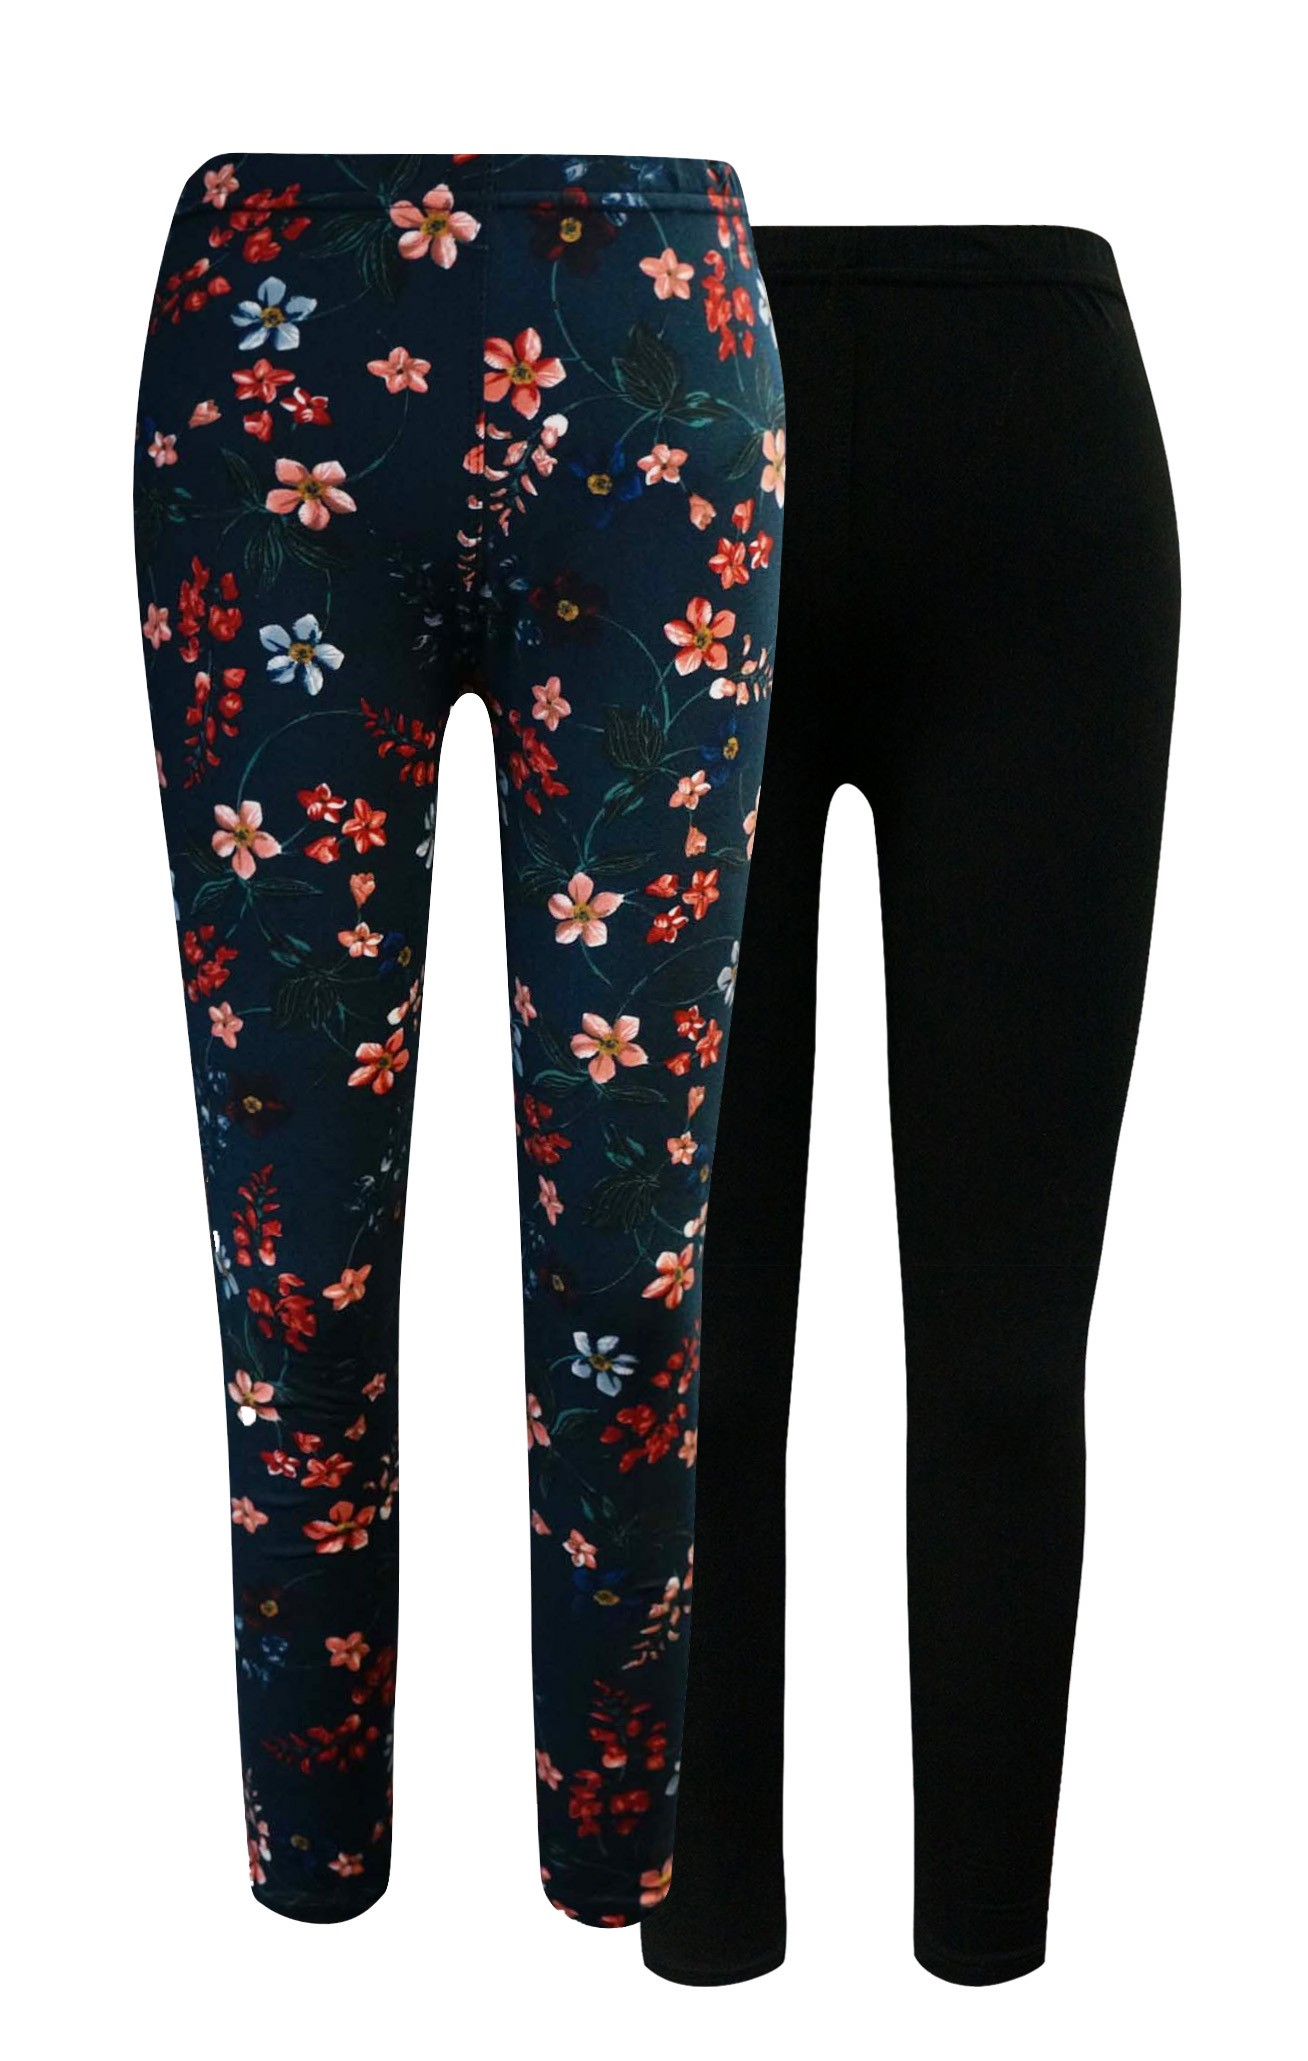 KIDS BLACK, BLACK/MULTI FLORAL PRINT BRUSH POLY LEGGING (2 PACK)(7/8, 10/12)#X2K8L54-06